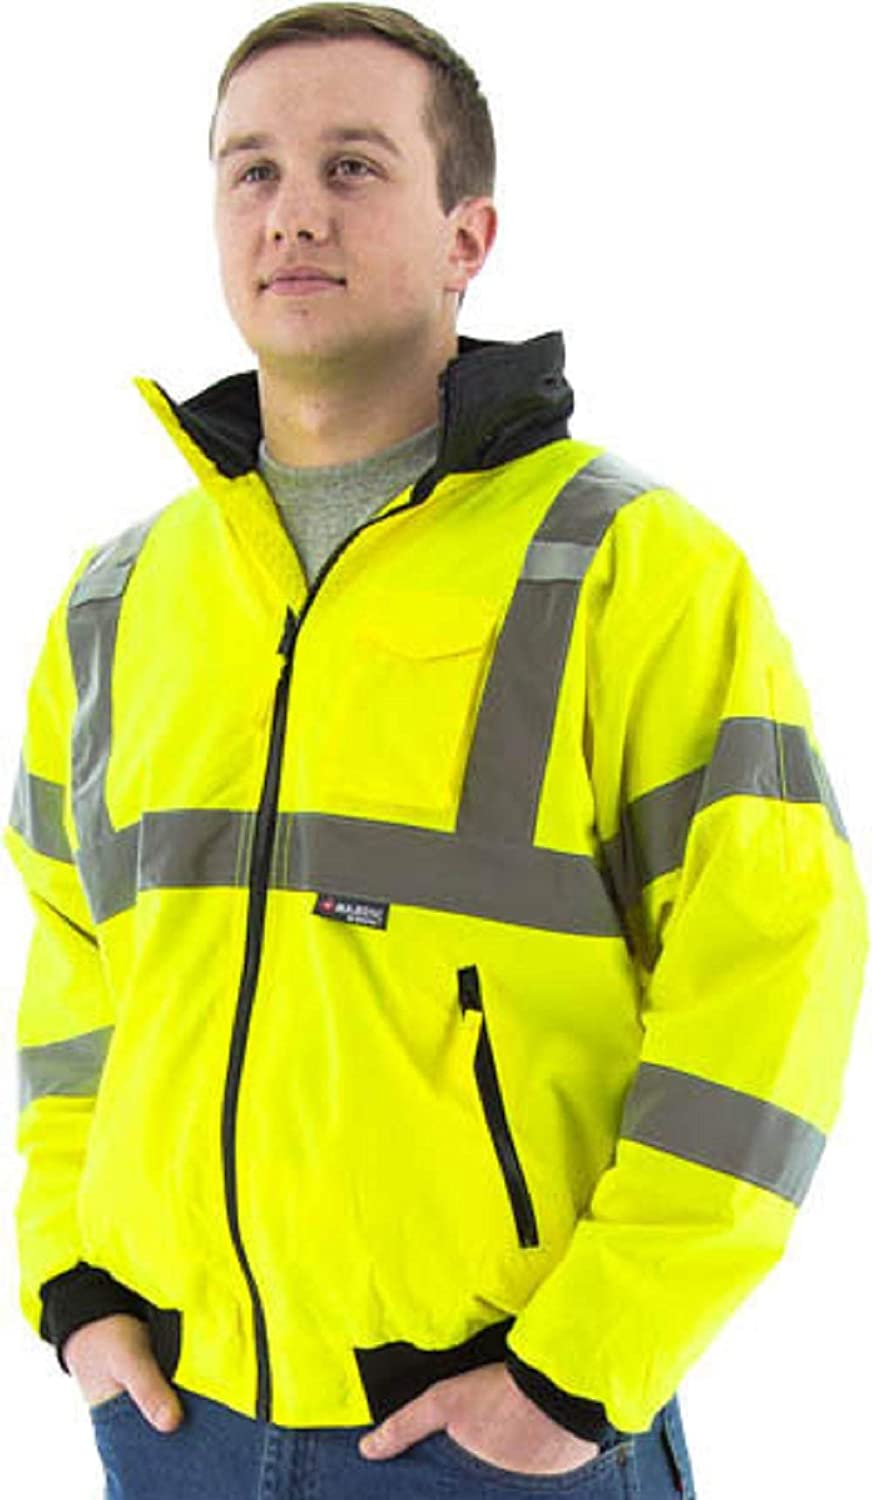 Majestic 75-1301 High Visibility Waterproof Winter Bomber Jacket, 2X - 2 Xtra Large Neon Green